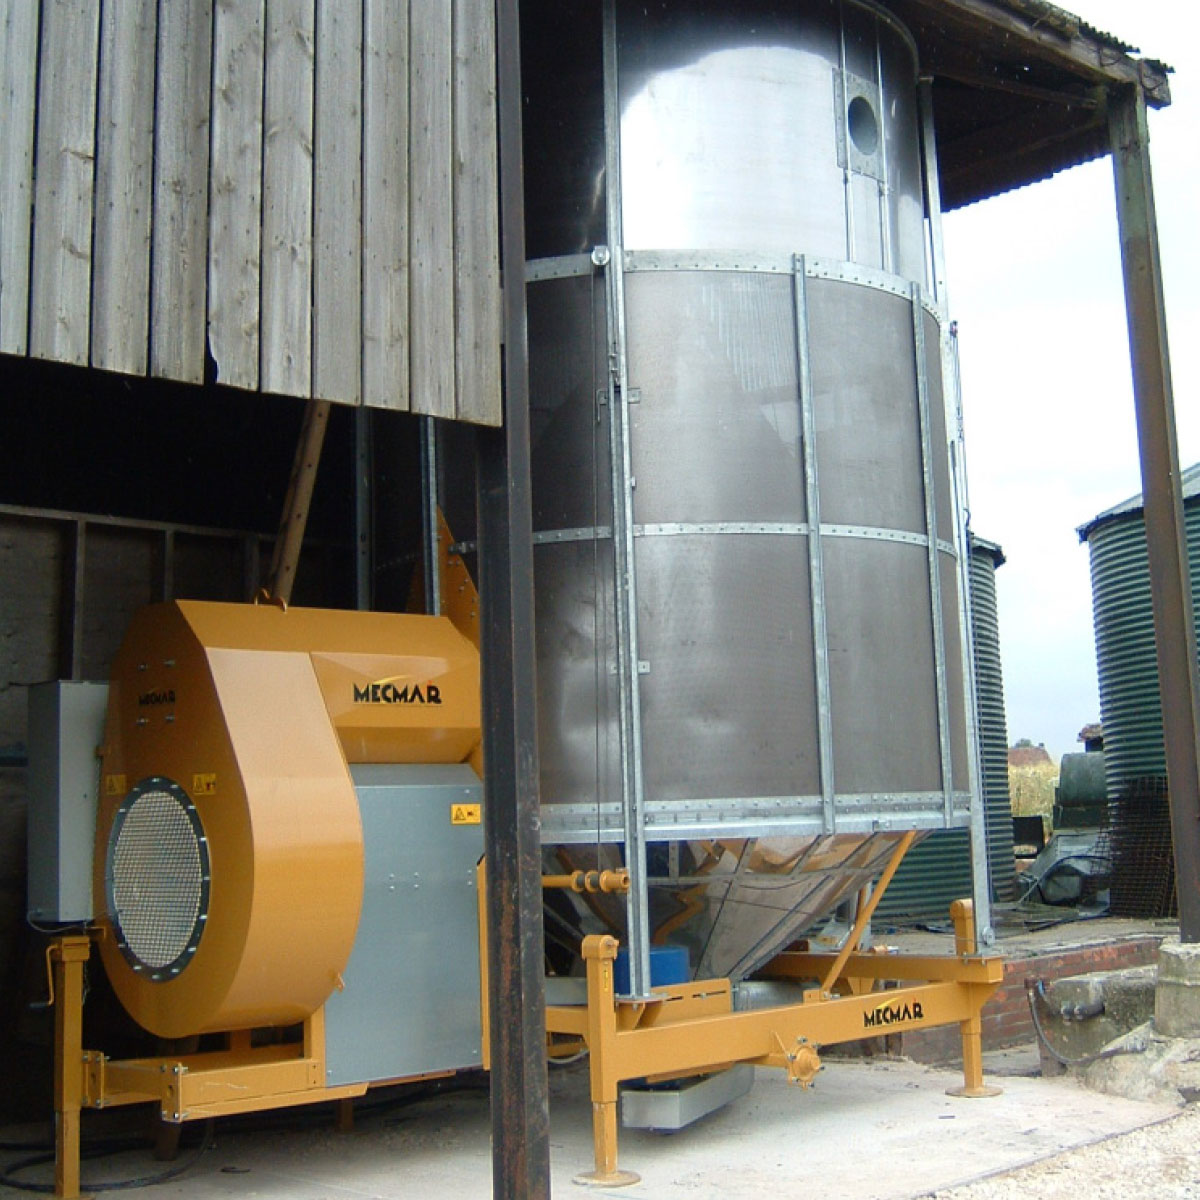 Mecmar grain drier